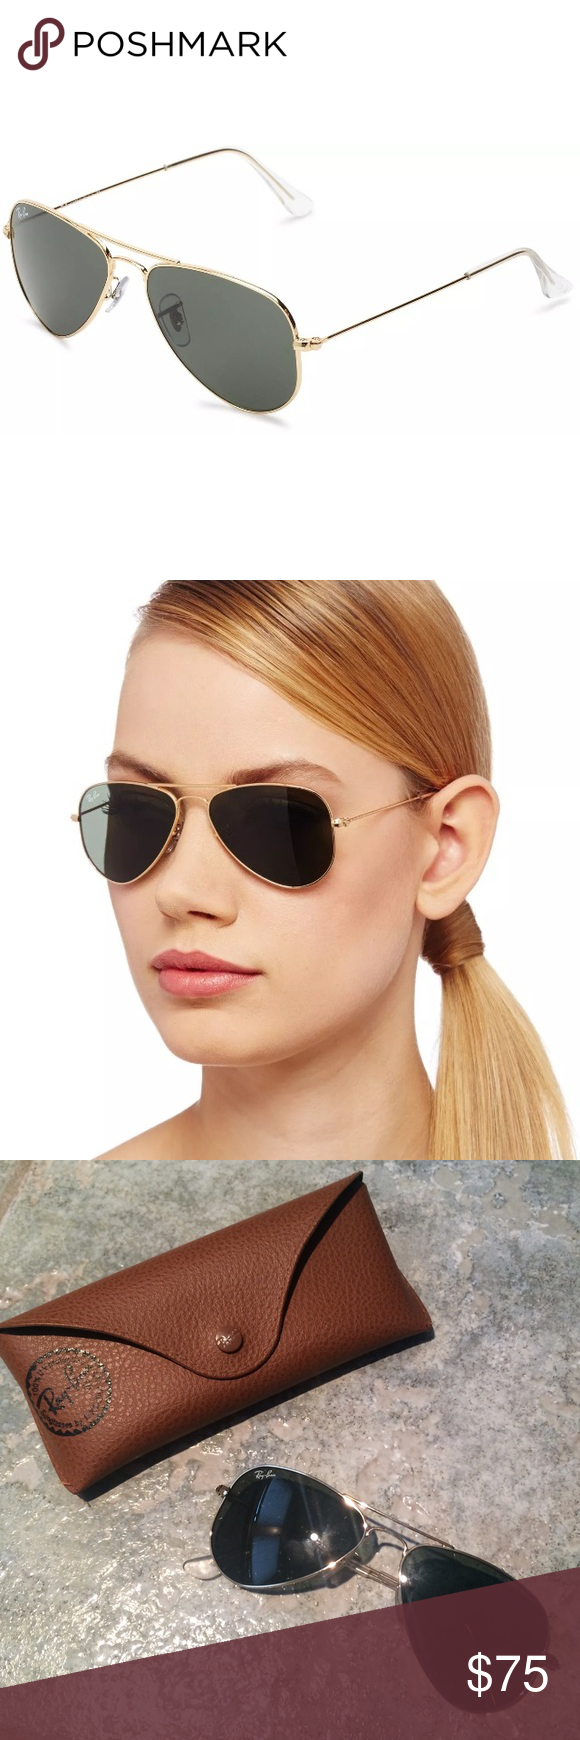 e21e1d078b RB 3044 Ray-Ban Small Aviators Decades ago Ray Ban introduced the Aviator  Sunglasses to the world